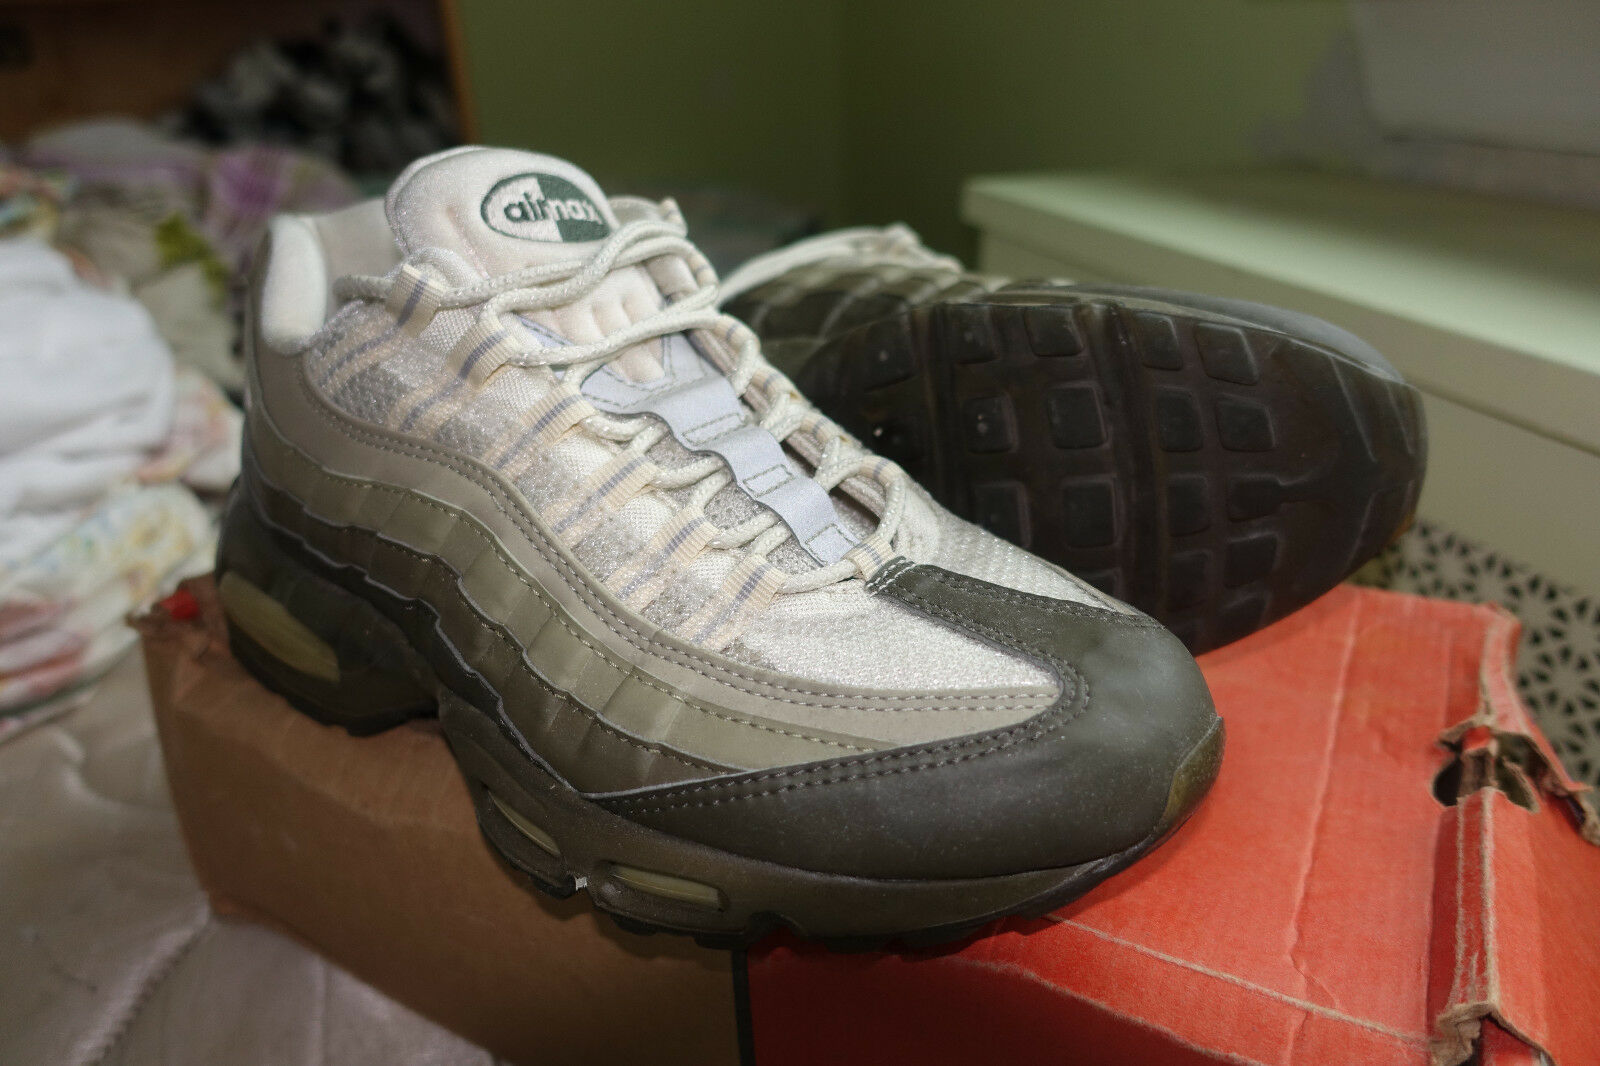 Nike Air Max 95 Olive Green size 9.5 co.jp exclusive